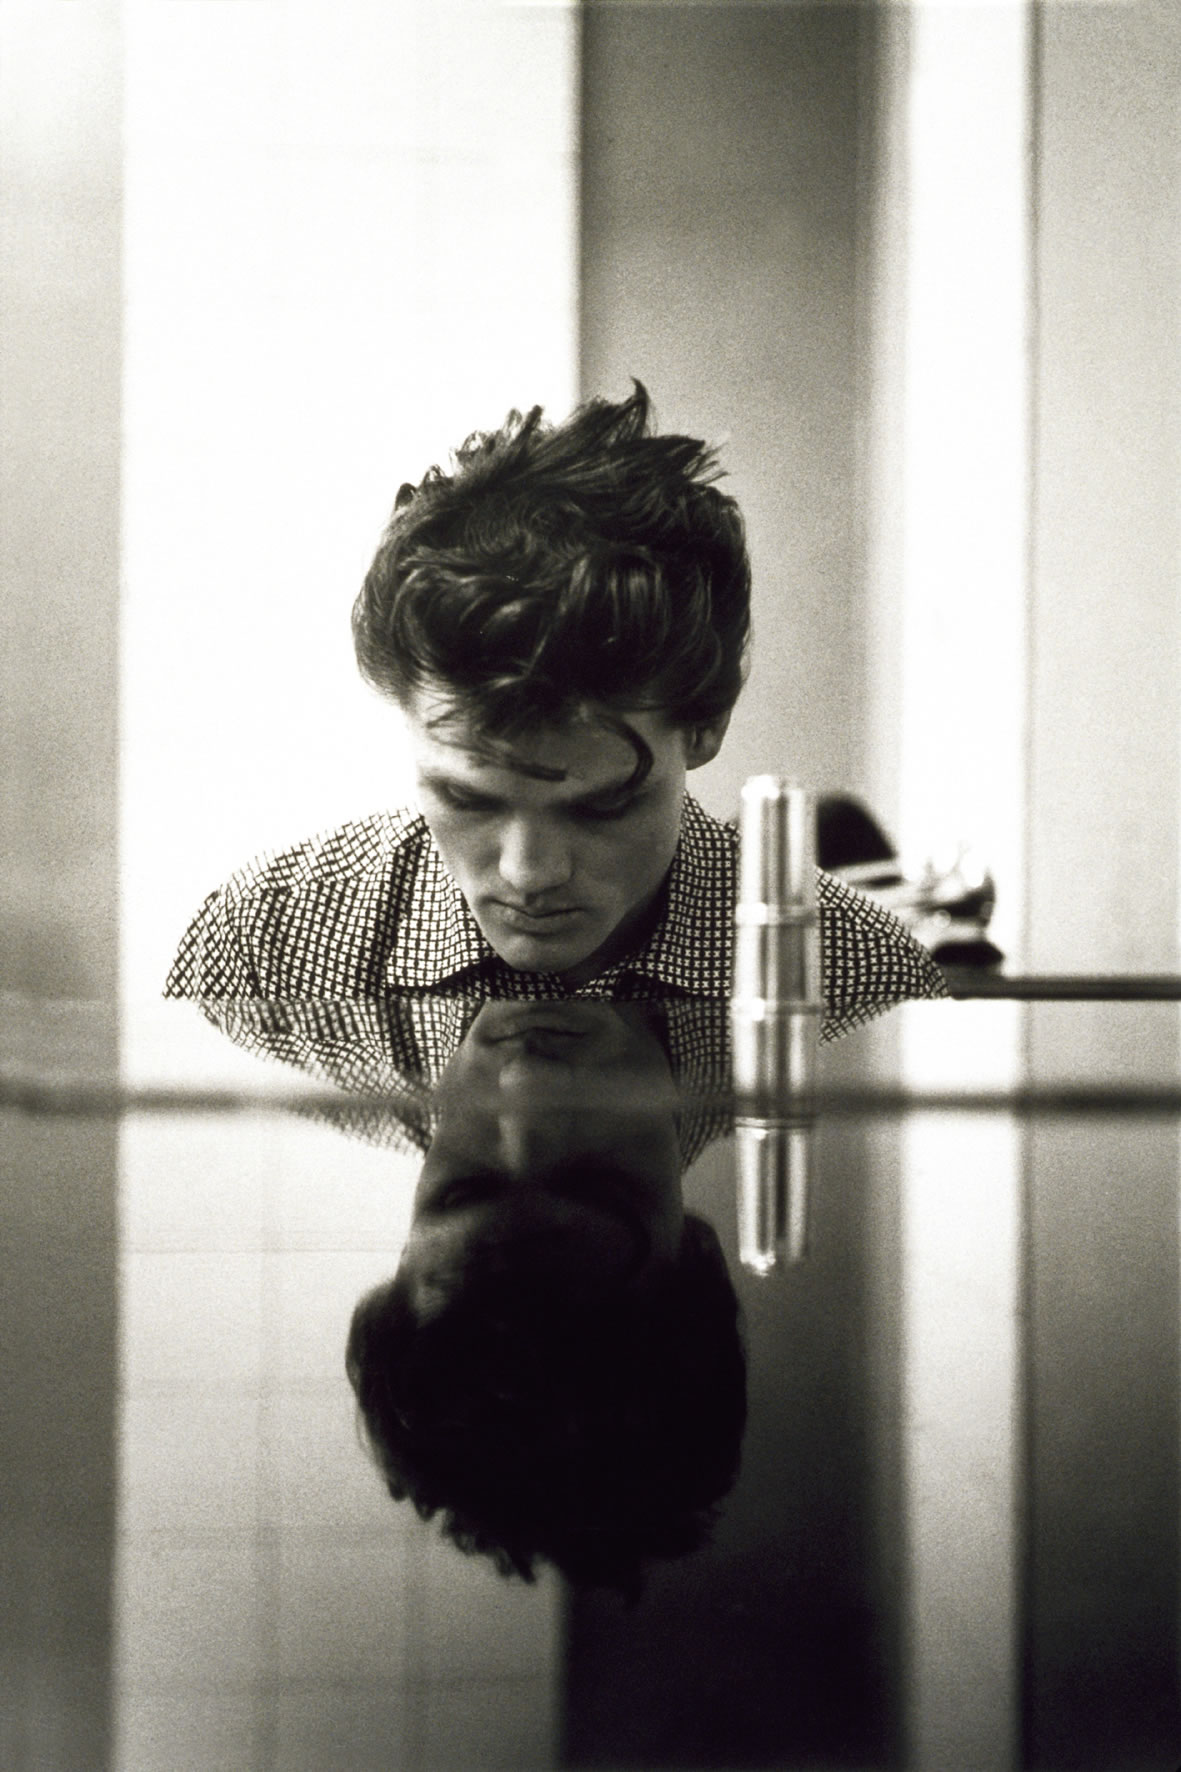 chet baker HD Wallpaper